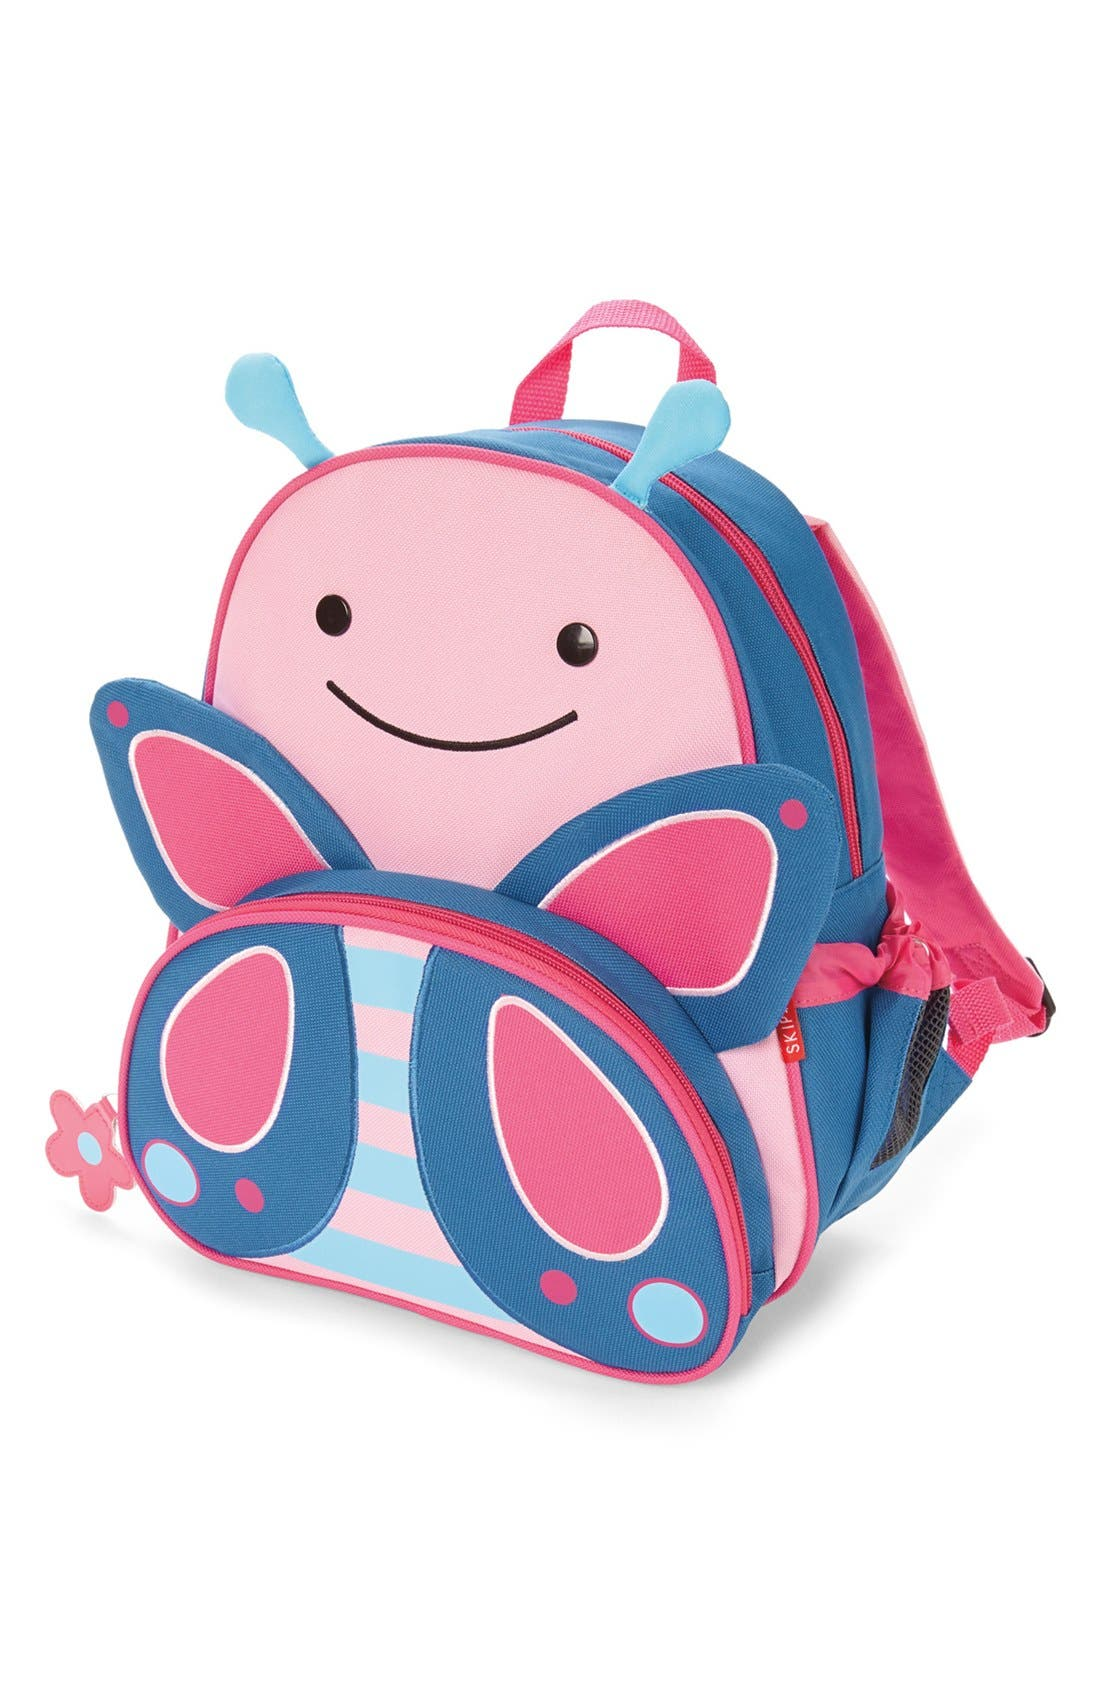 Zoo Pack Backpack,                             Alternate thumbnail 2, color,                             Pink Solid